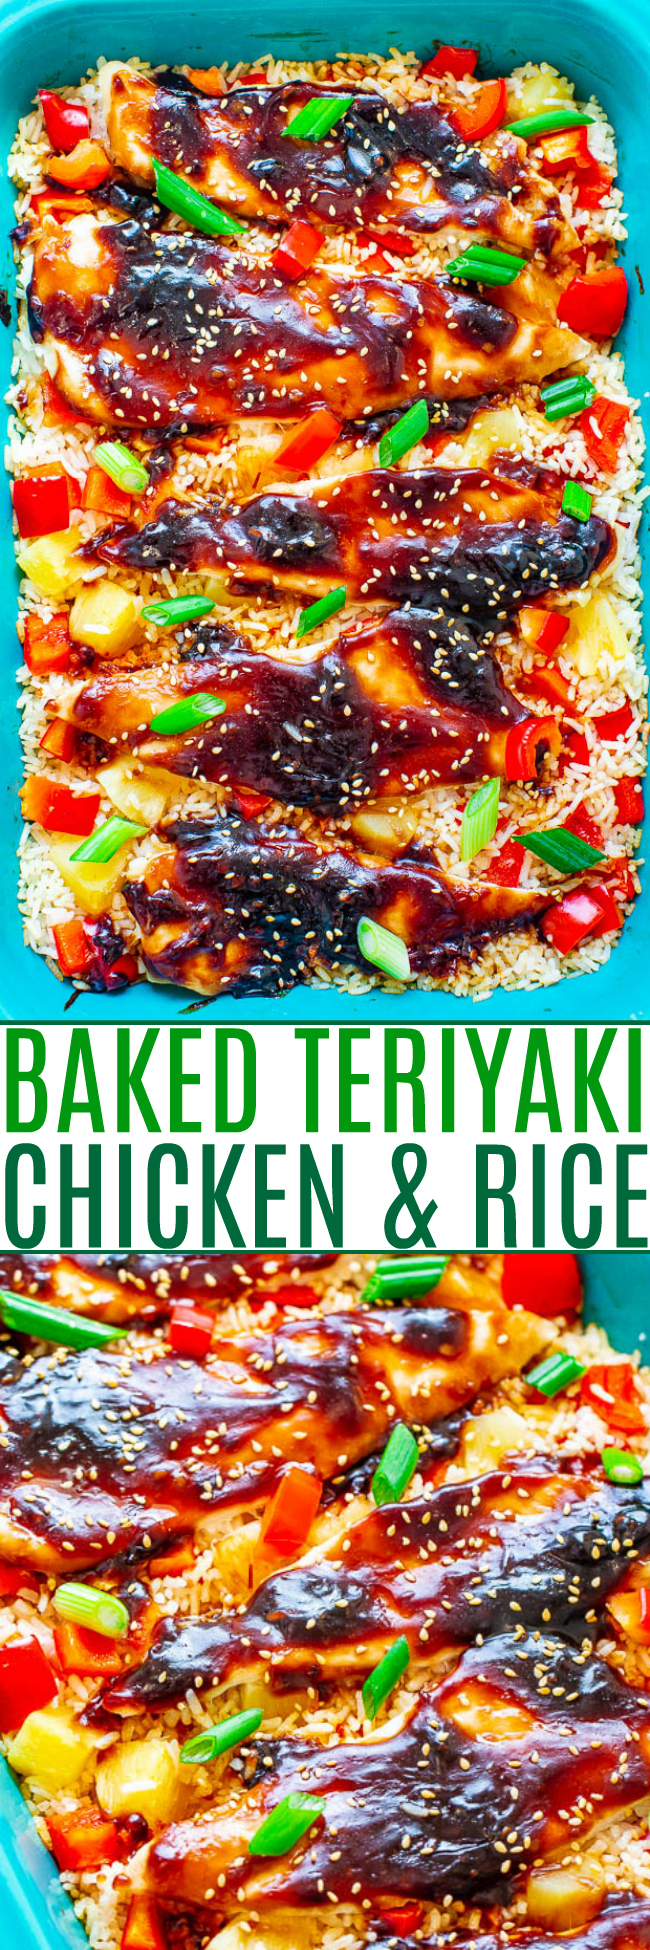 Baked Teriyaki Chicken and Rice - Chicken, rice, pineapple, and red peppers cook together in ONE pan for an EASY weeknight dinner that tastes like you're in Hawaii!! The homemade teriyaki sauce adds so much INCREDIBLE flavor!!